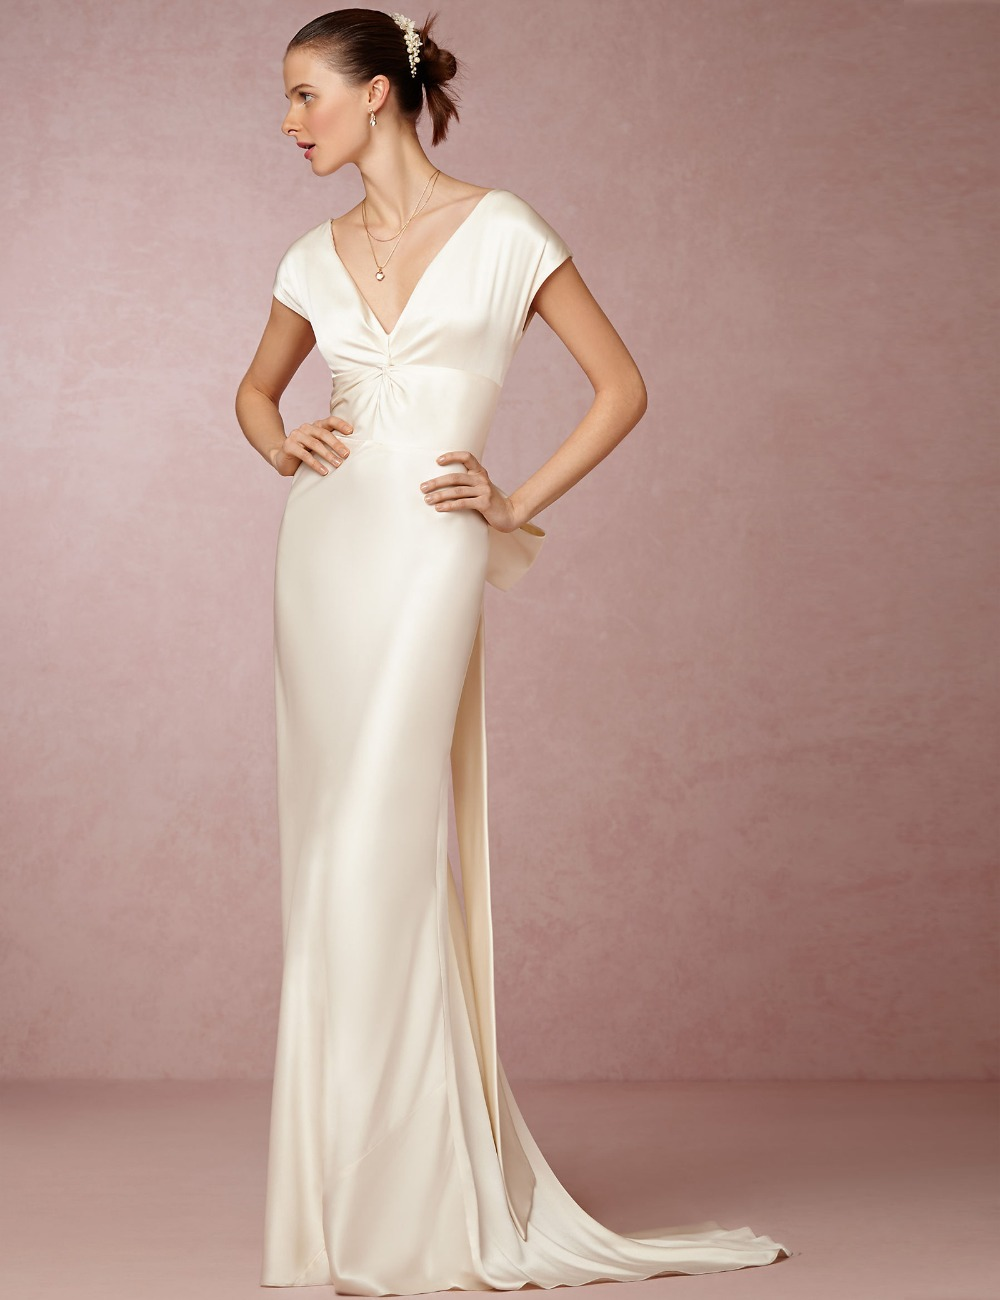 Compare Prices on Silk Chiffon Wedding Dresses- Online Shopping ...